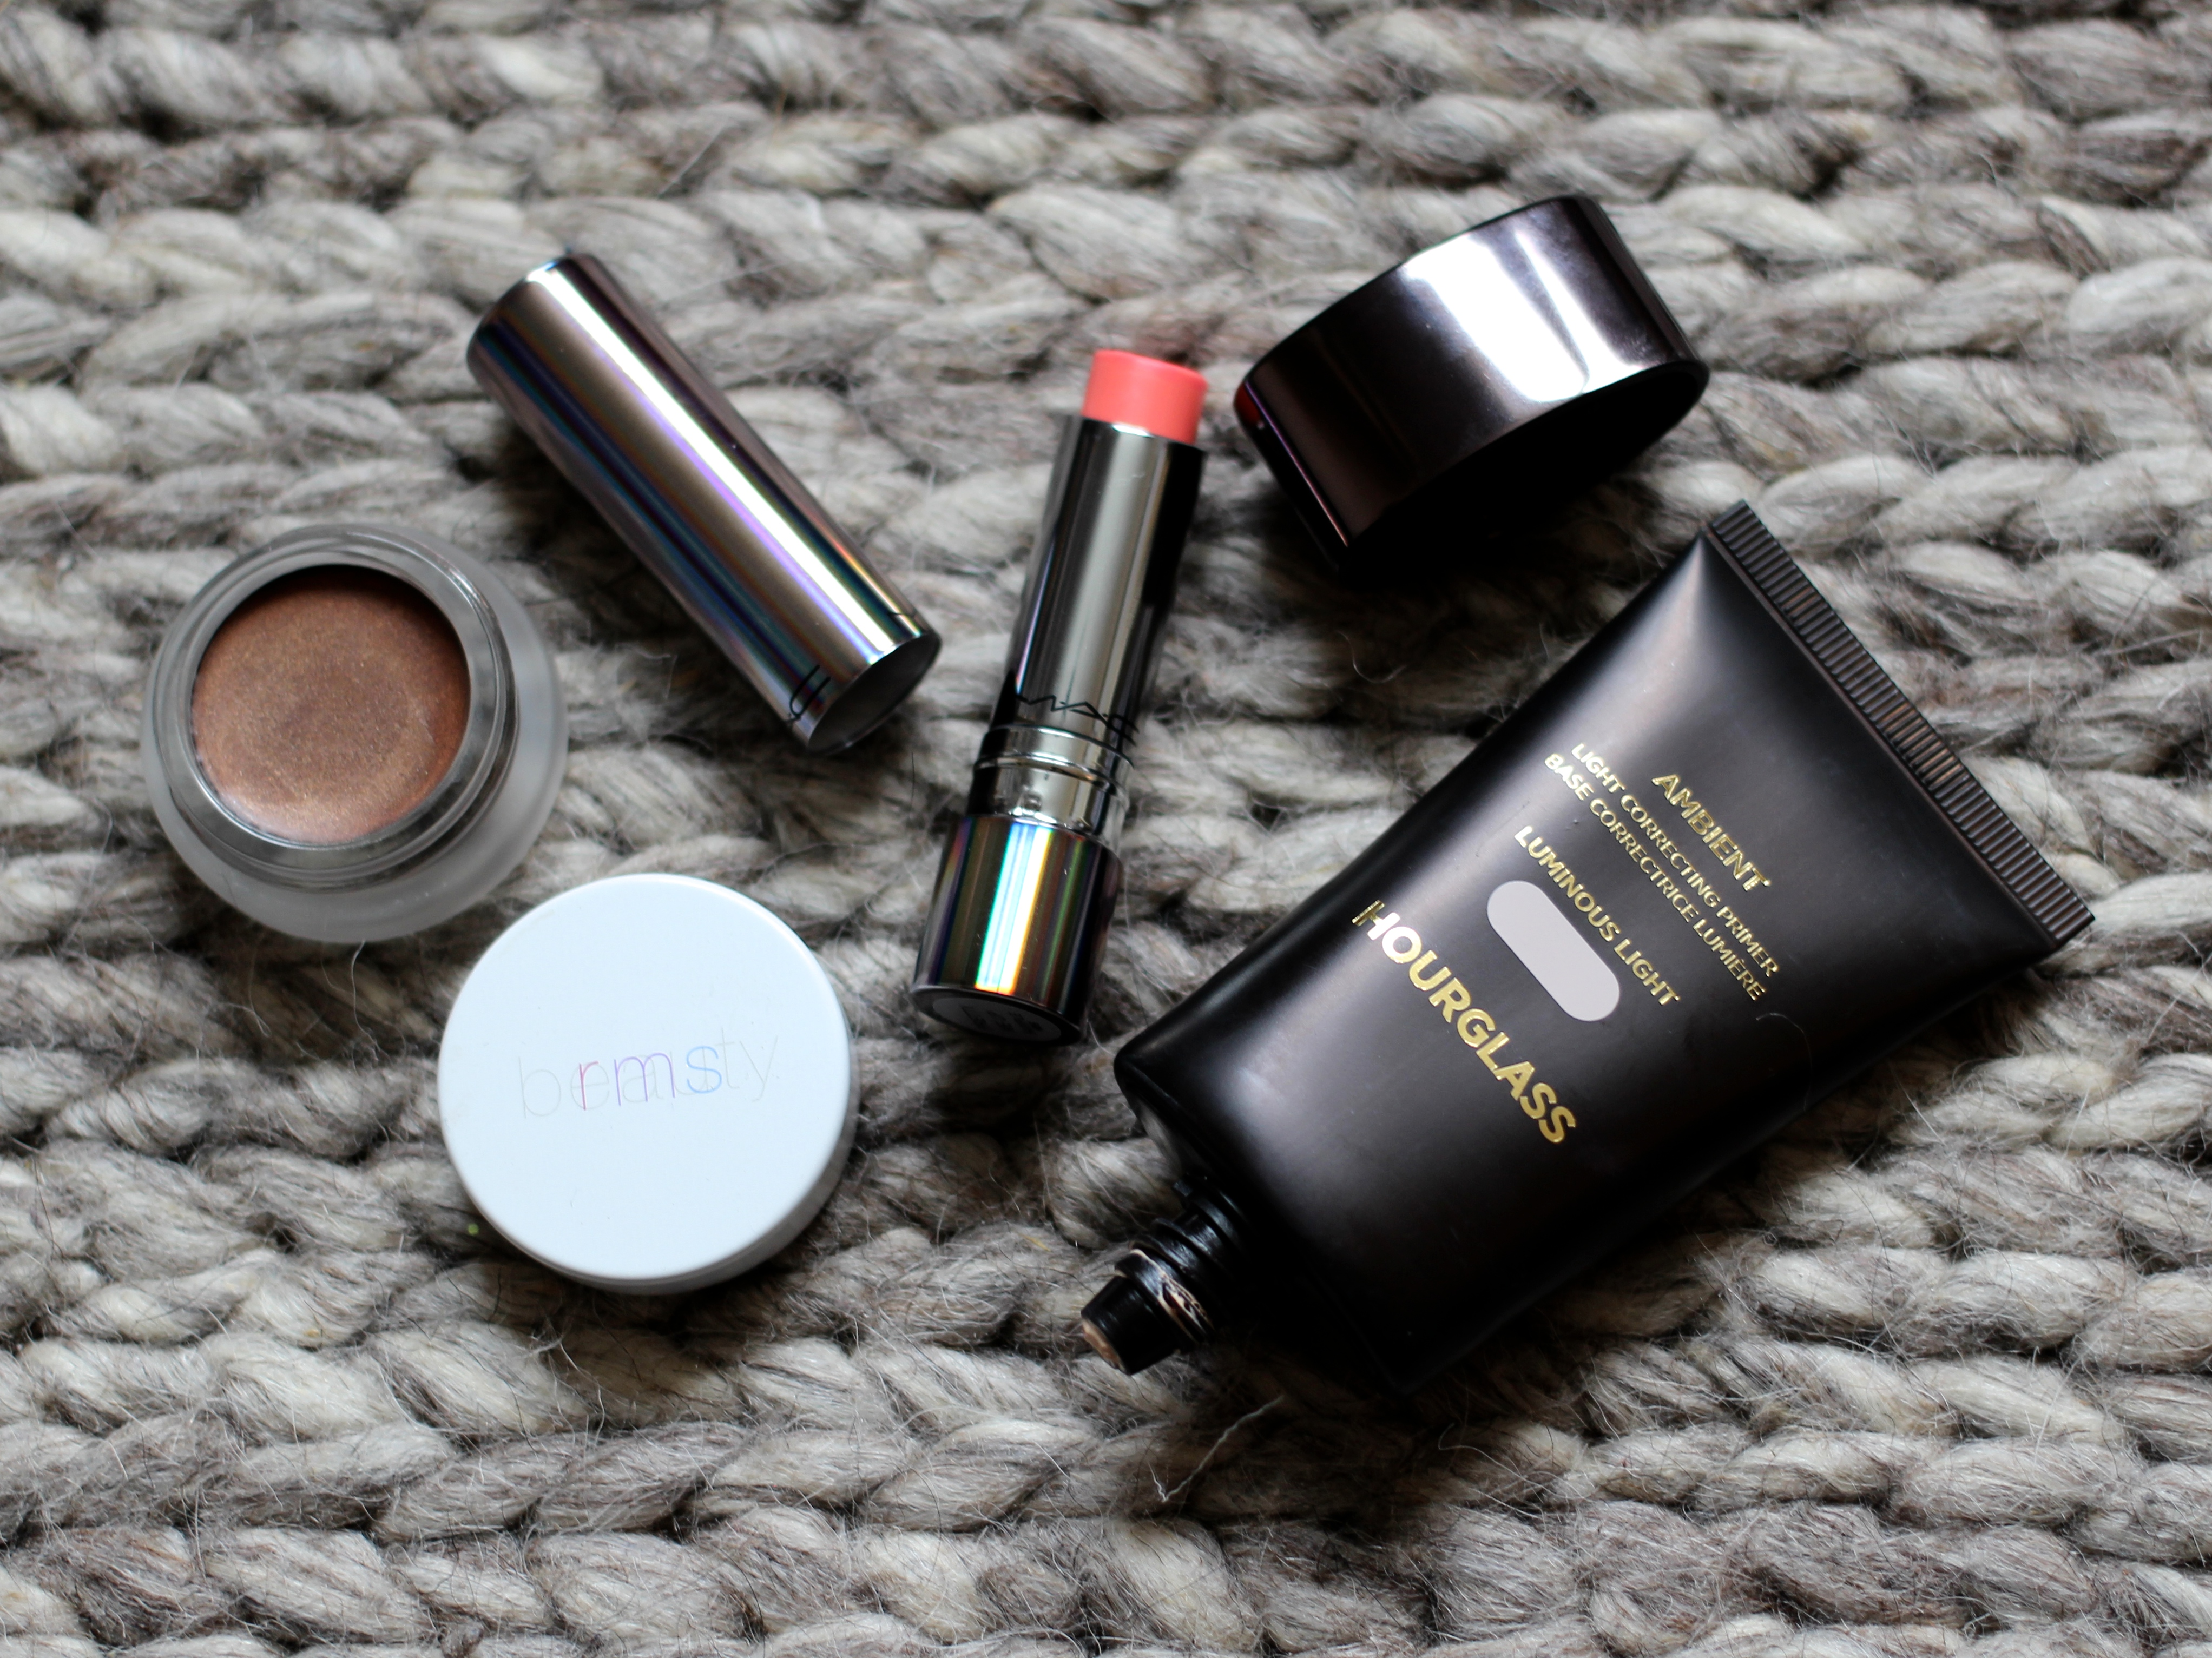 Hourglass Ambient Light Correcting Primer, MAC Tendertalk Lip Balm and RMS Contour Review